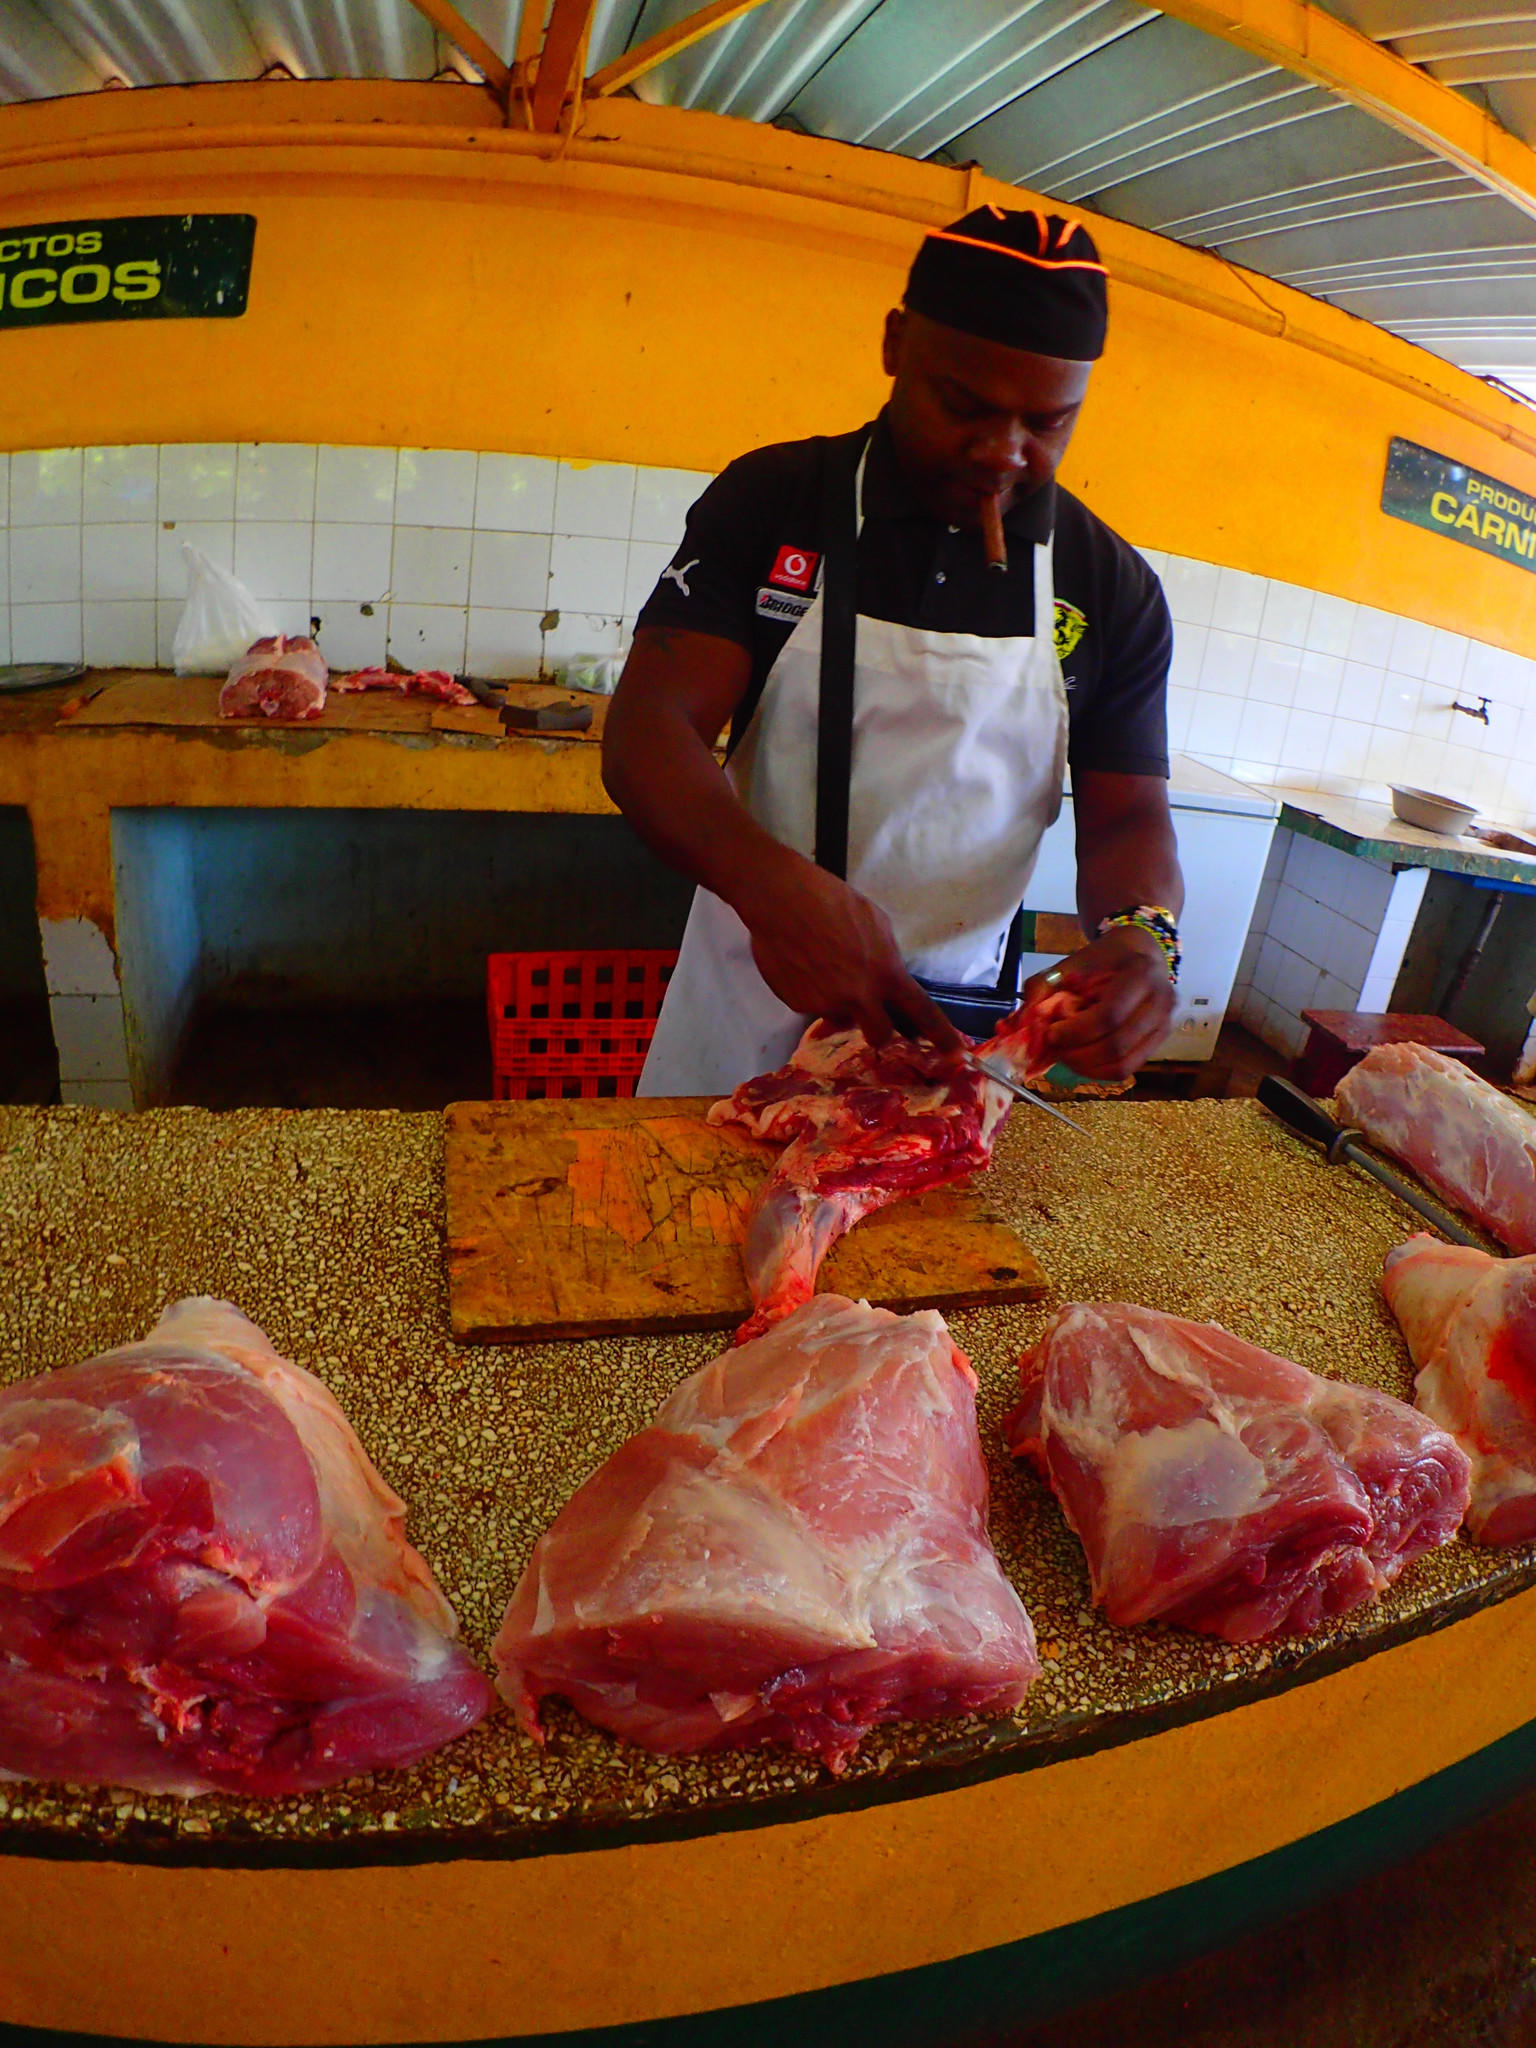 A cigar-smoking butcher hacks away at the day's meat inside a farmers market in Havana's Vedada district.